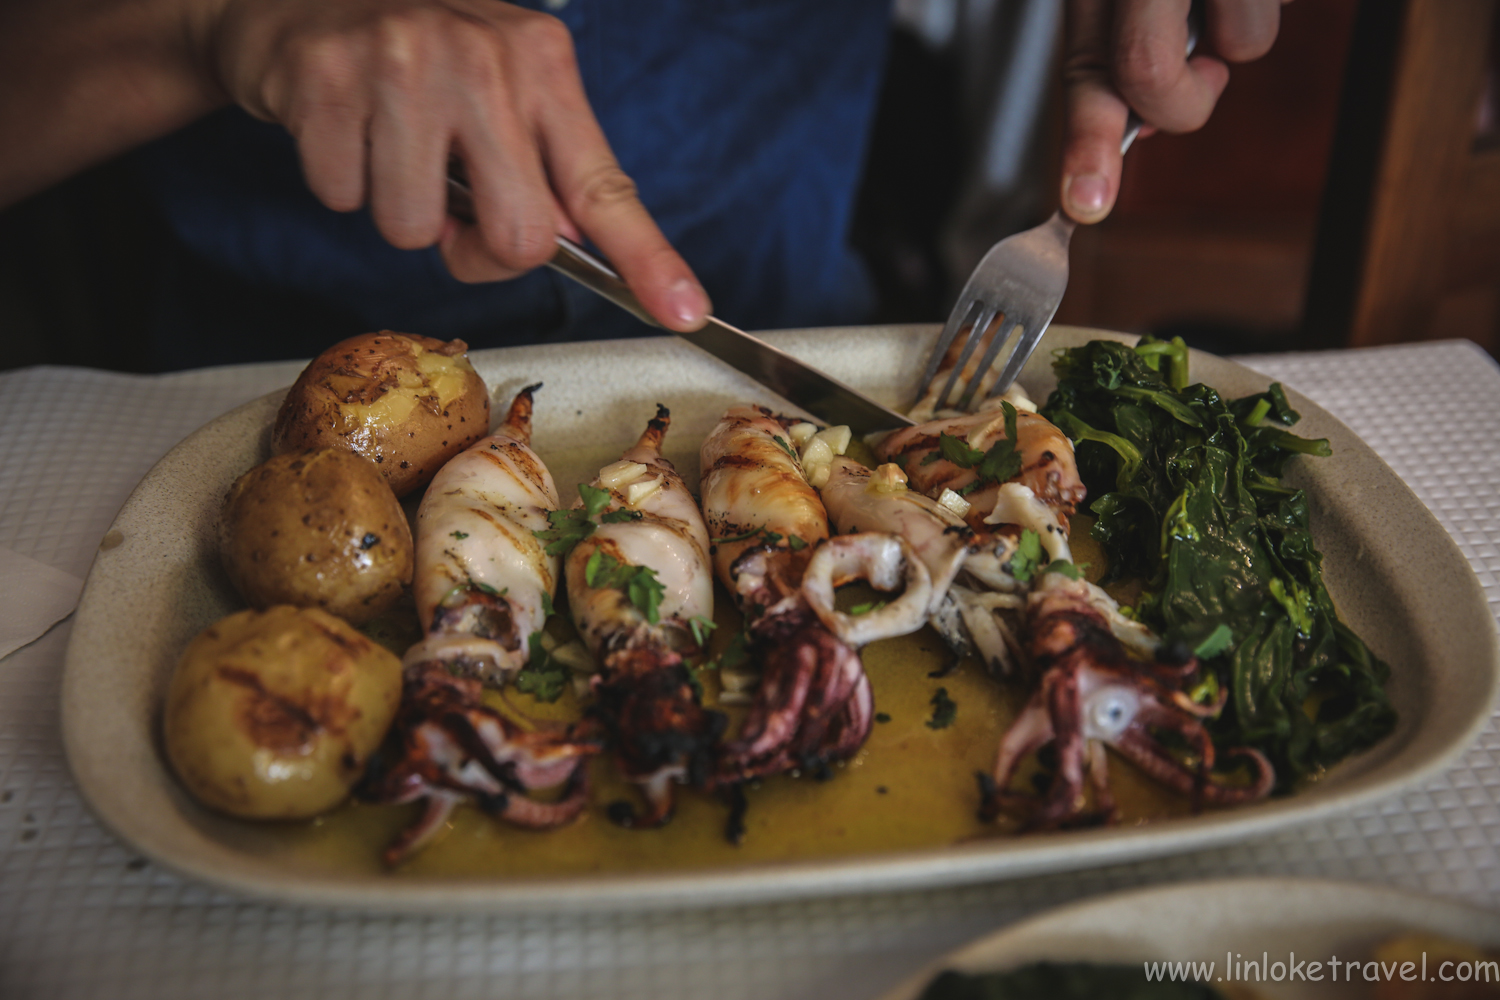 Food in Portugal/Delicious grilled squid with a side of potatoes and greens.